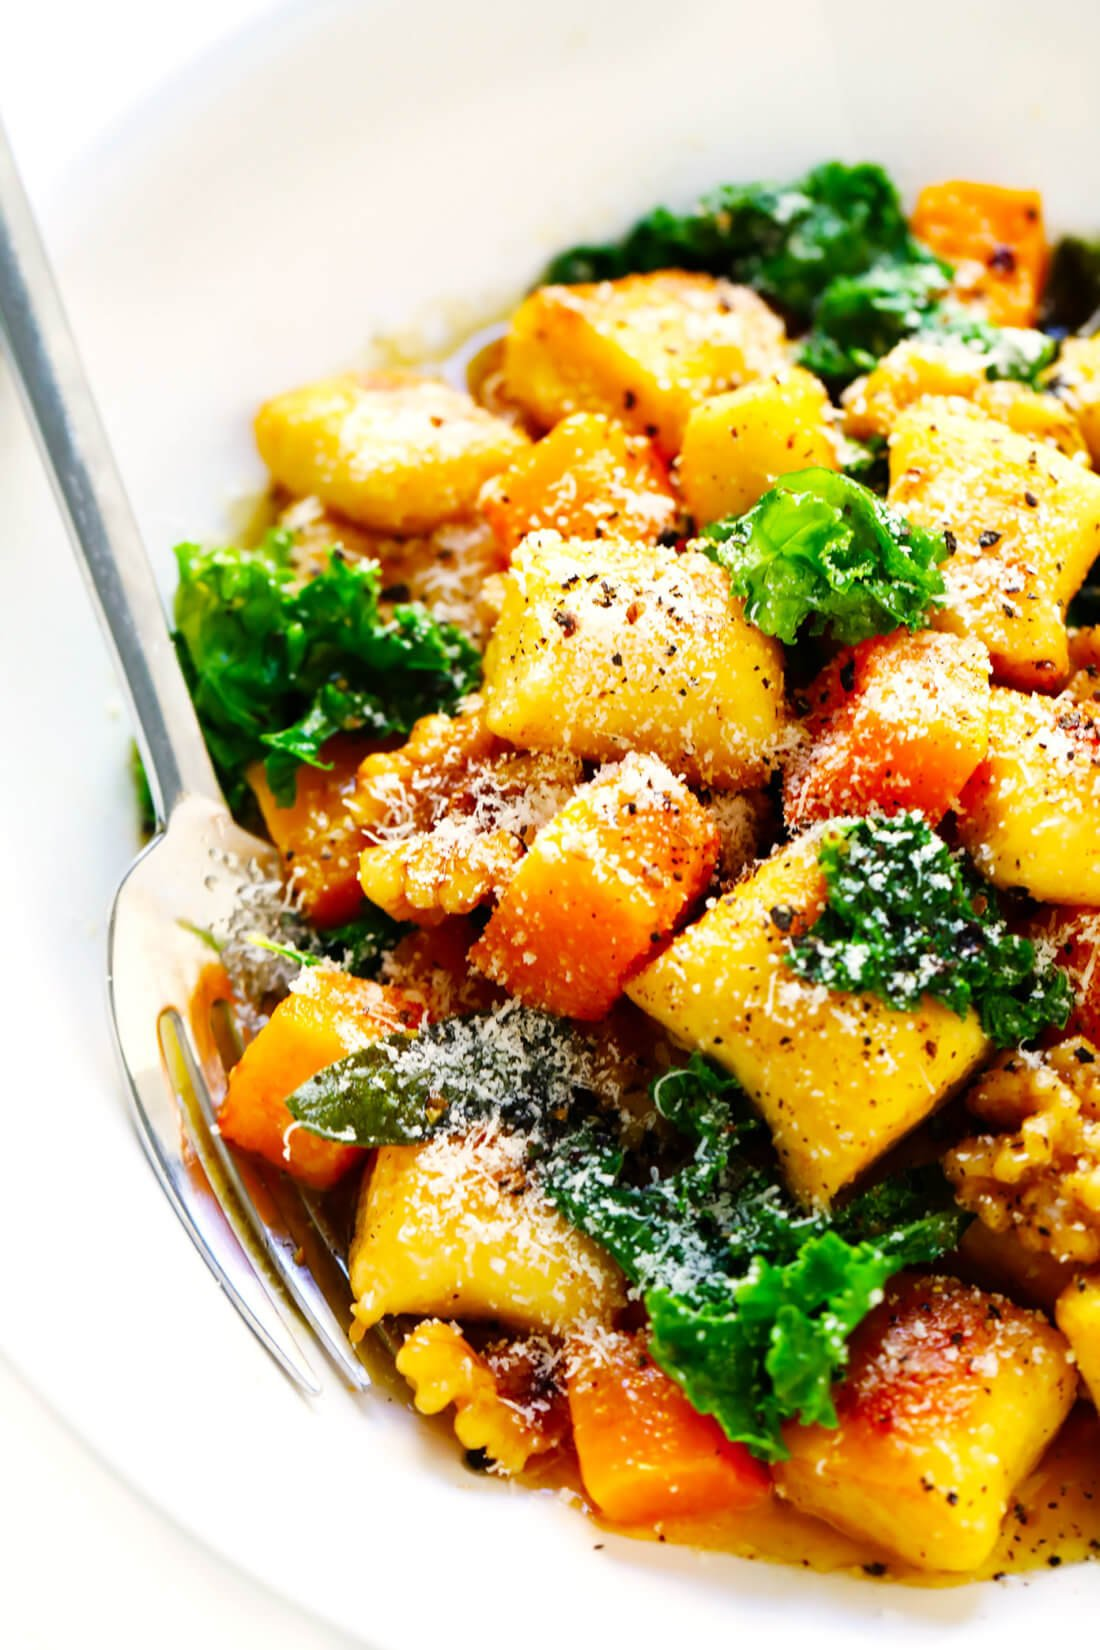 Toasted Gnocchi with Roasted Butternut Squash, Kale, Walnuts, Parmesan and Brown Butter Sauce